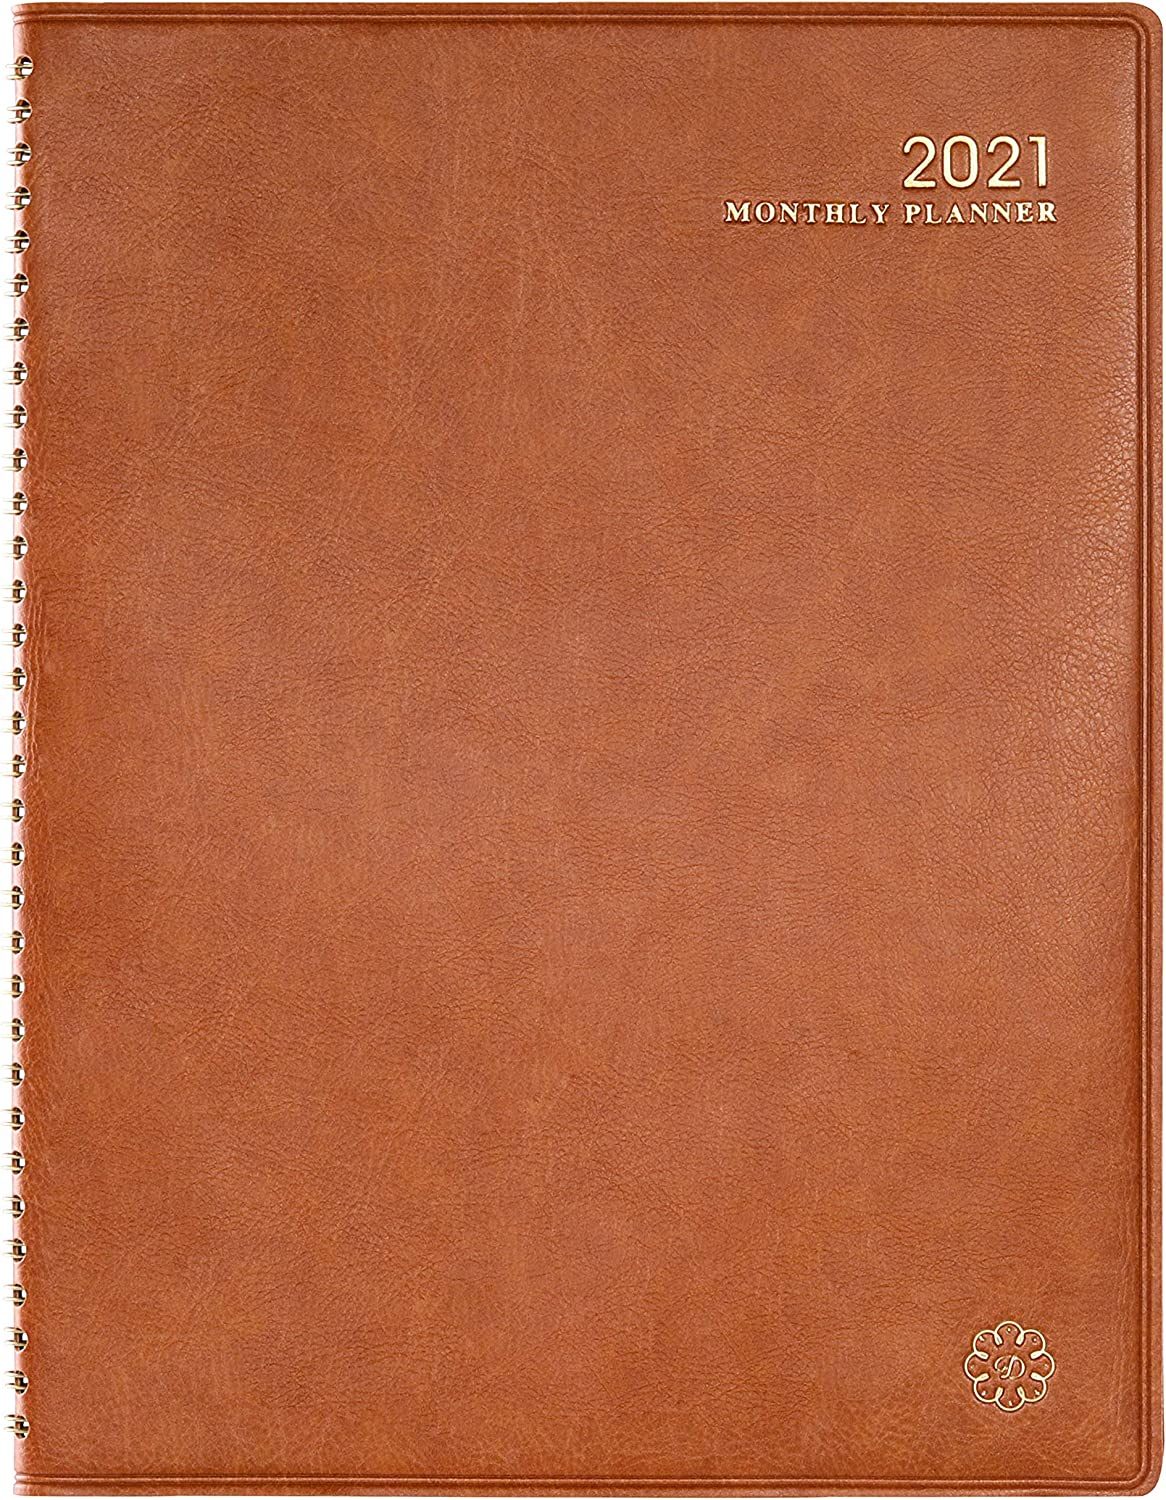 """2021 Monthly Planner- Monthly Planner 2021 with Monthly Tabs, 9"""" x 11"""" Faux Leather Soft Cover, Twin-Wire Binding + Inner Pocket"""